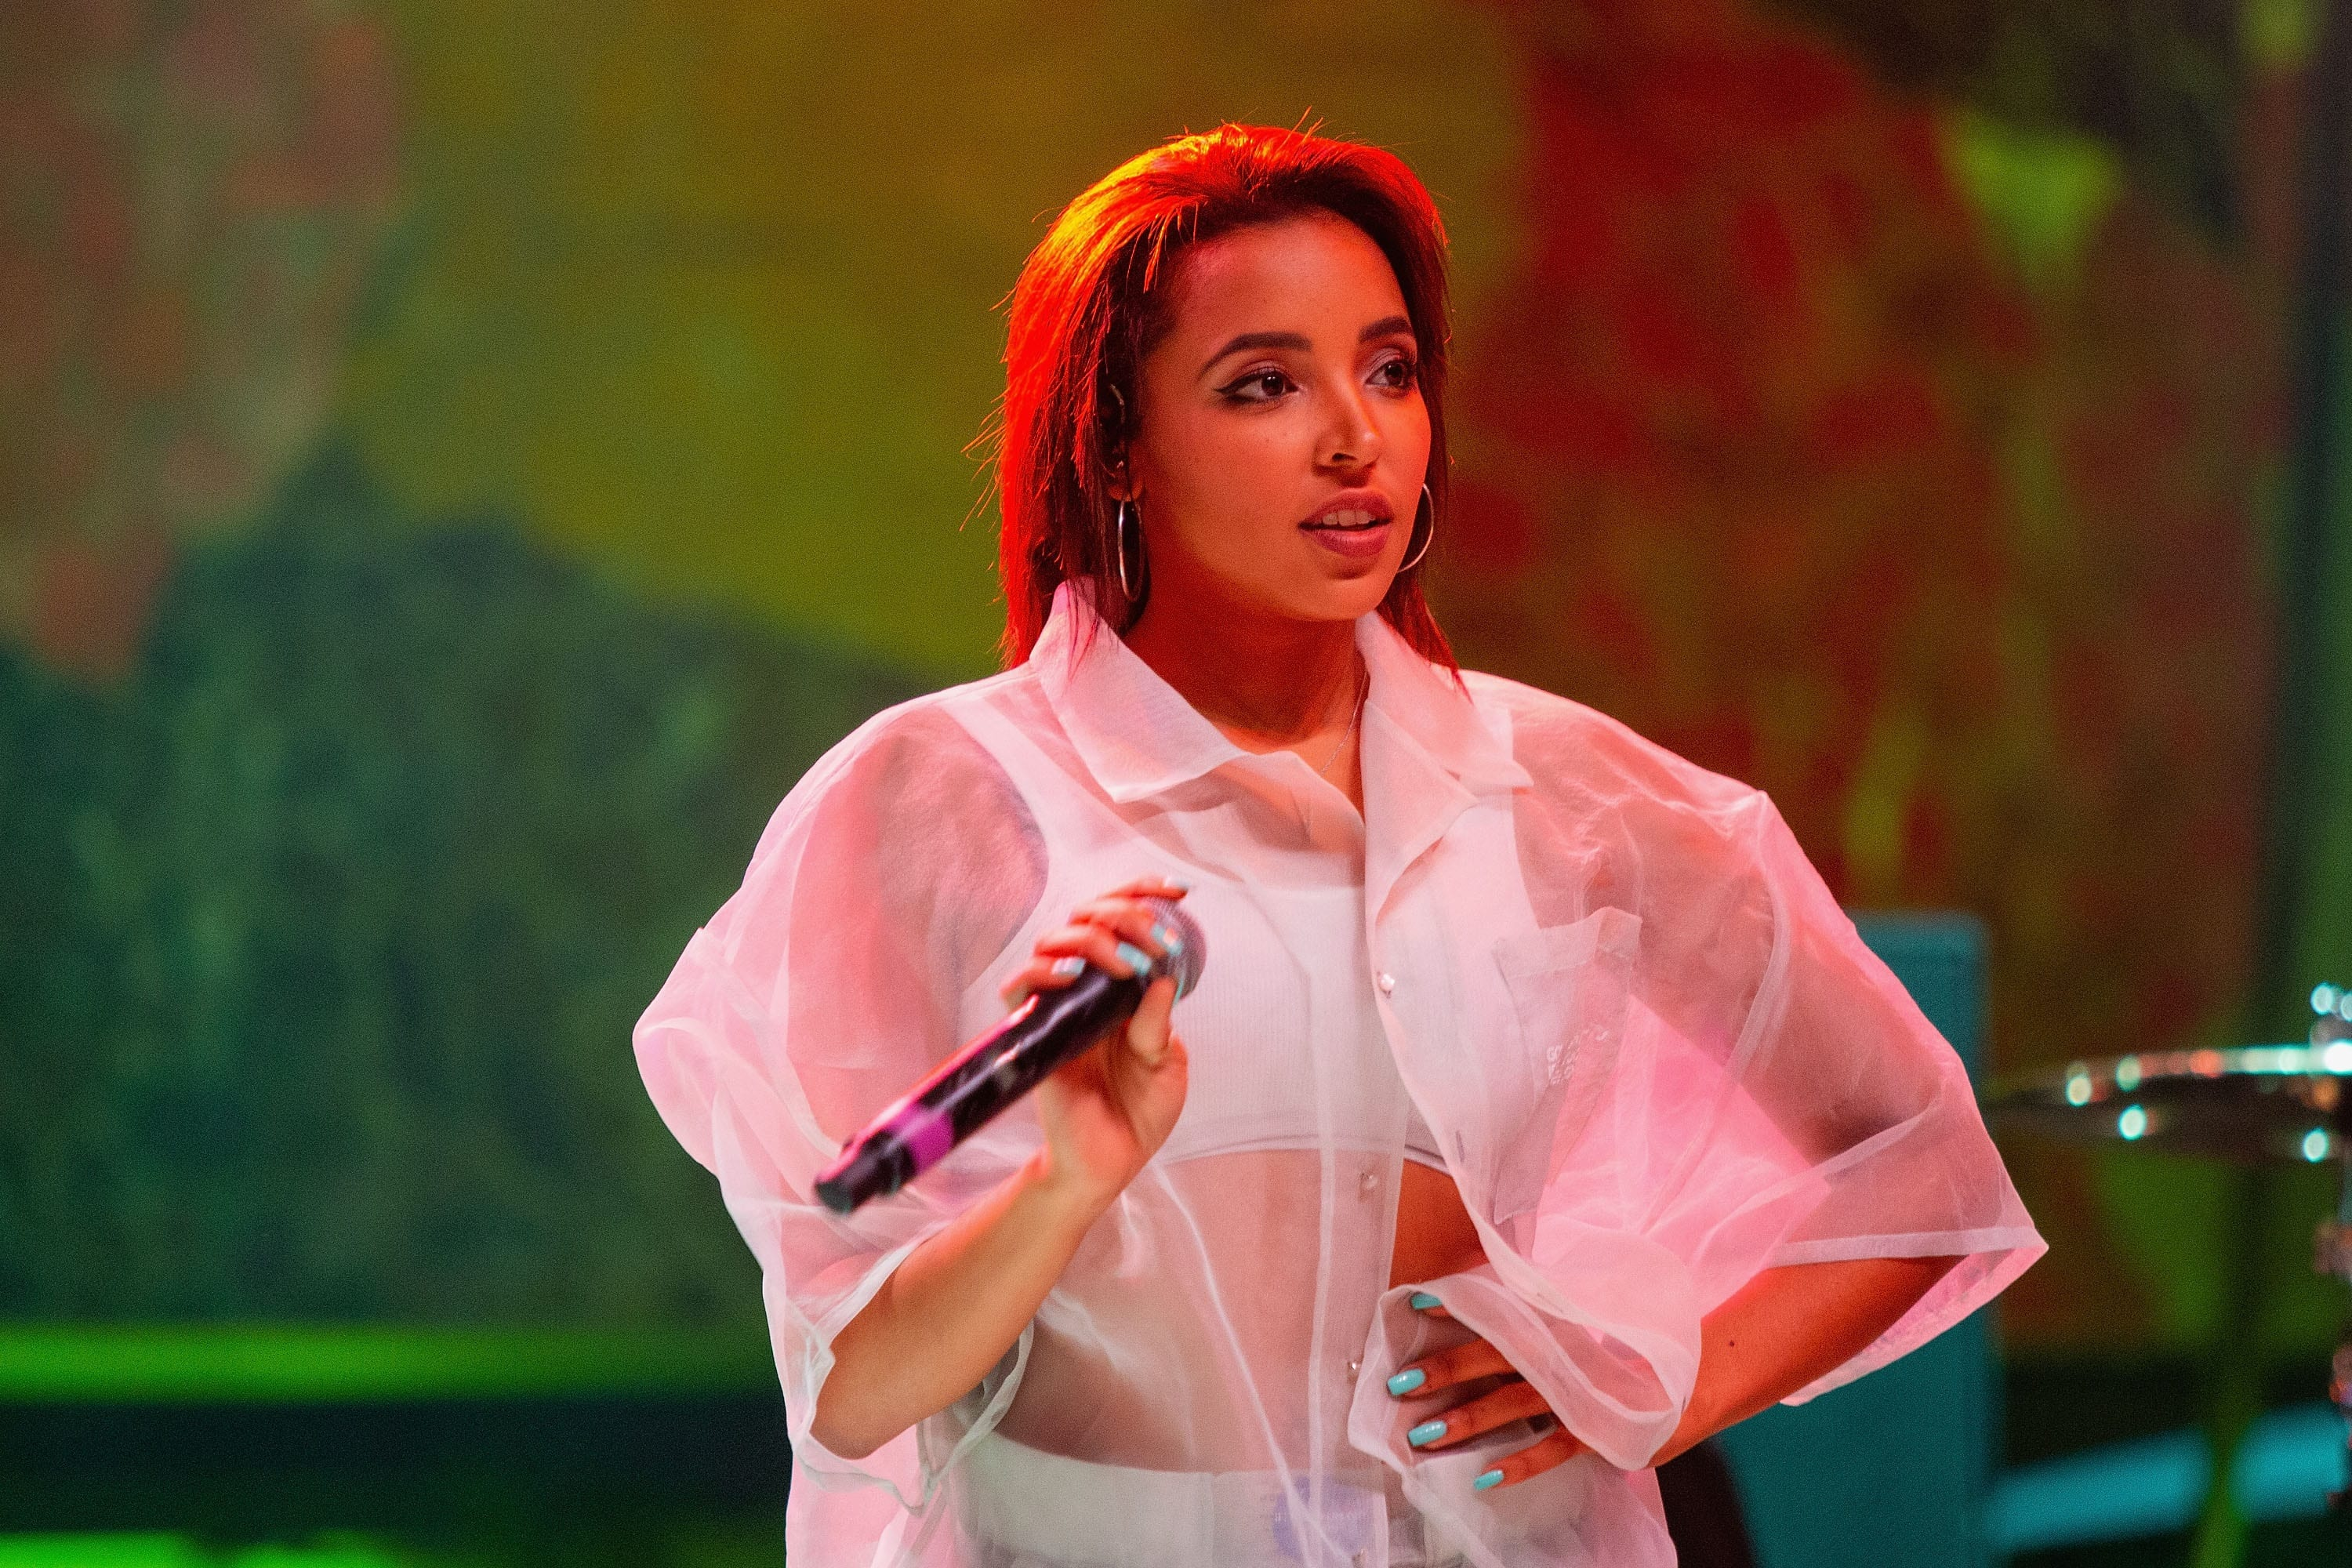 Photo of R&B singer Tinashe in concert